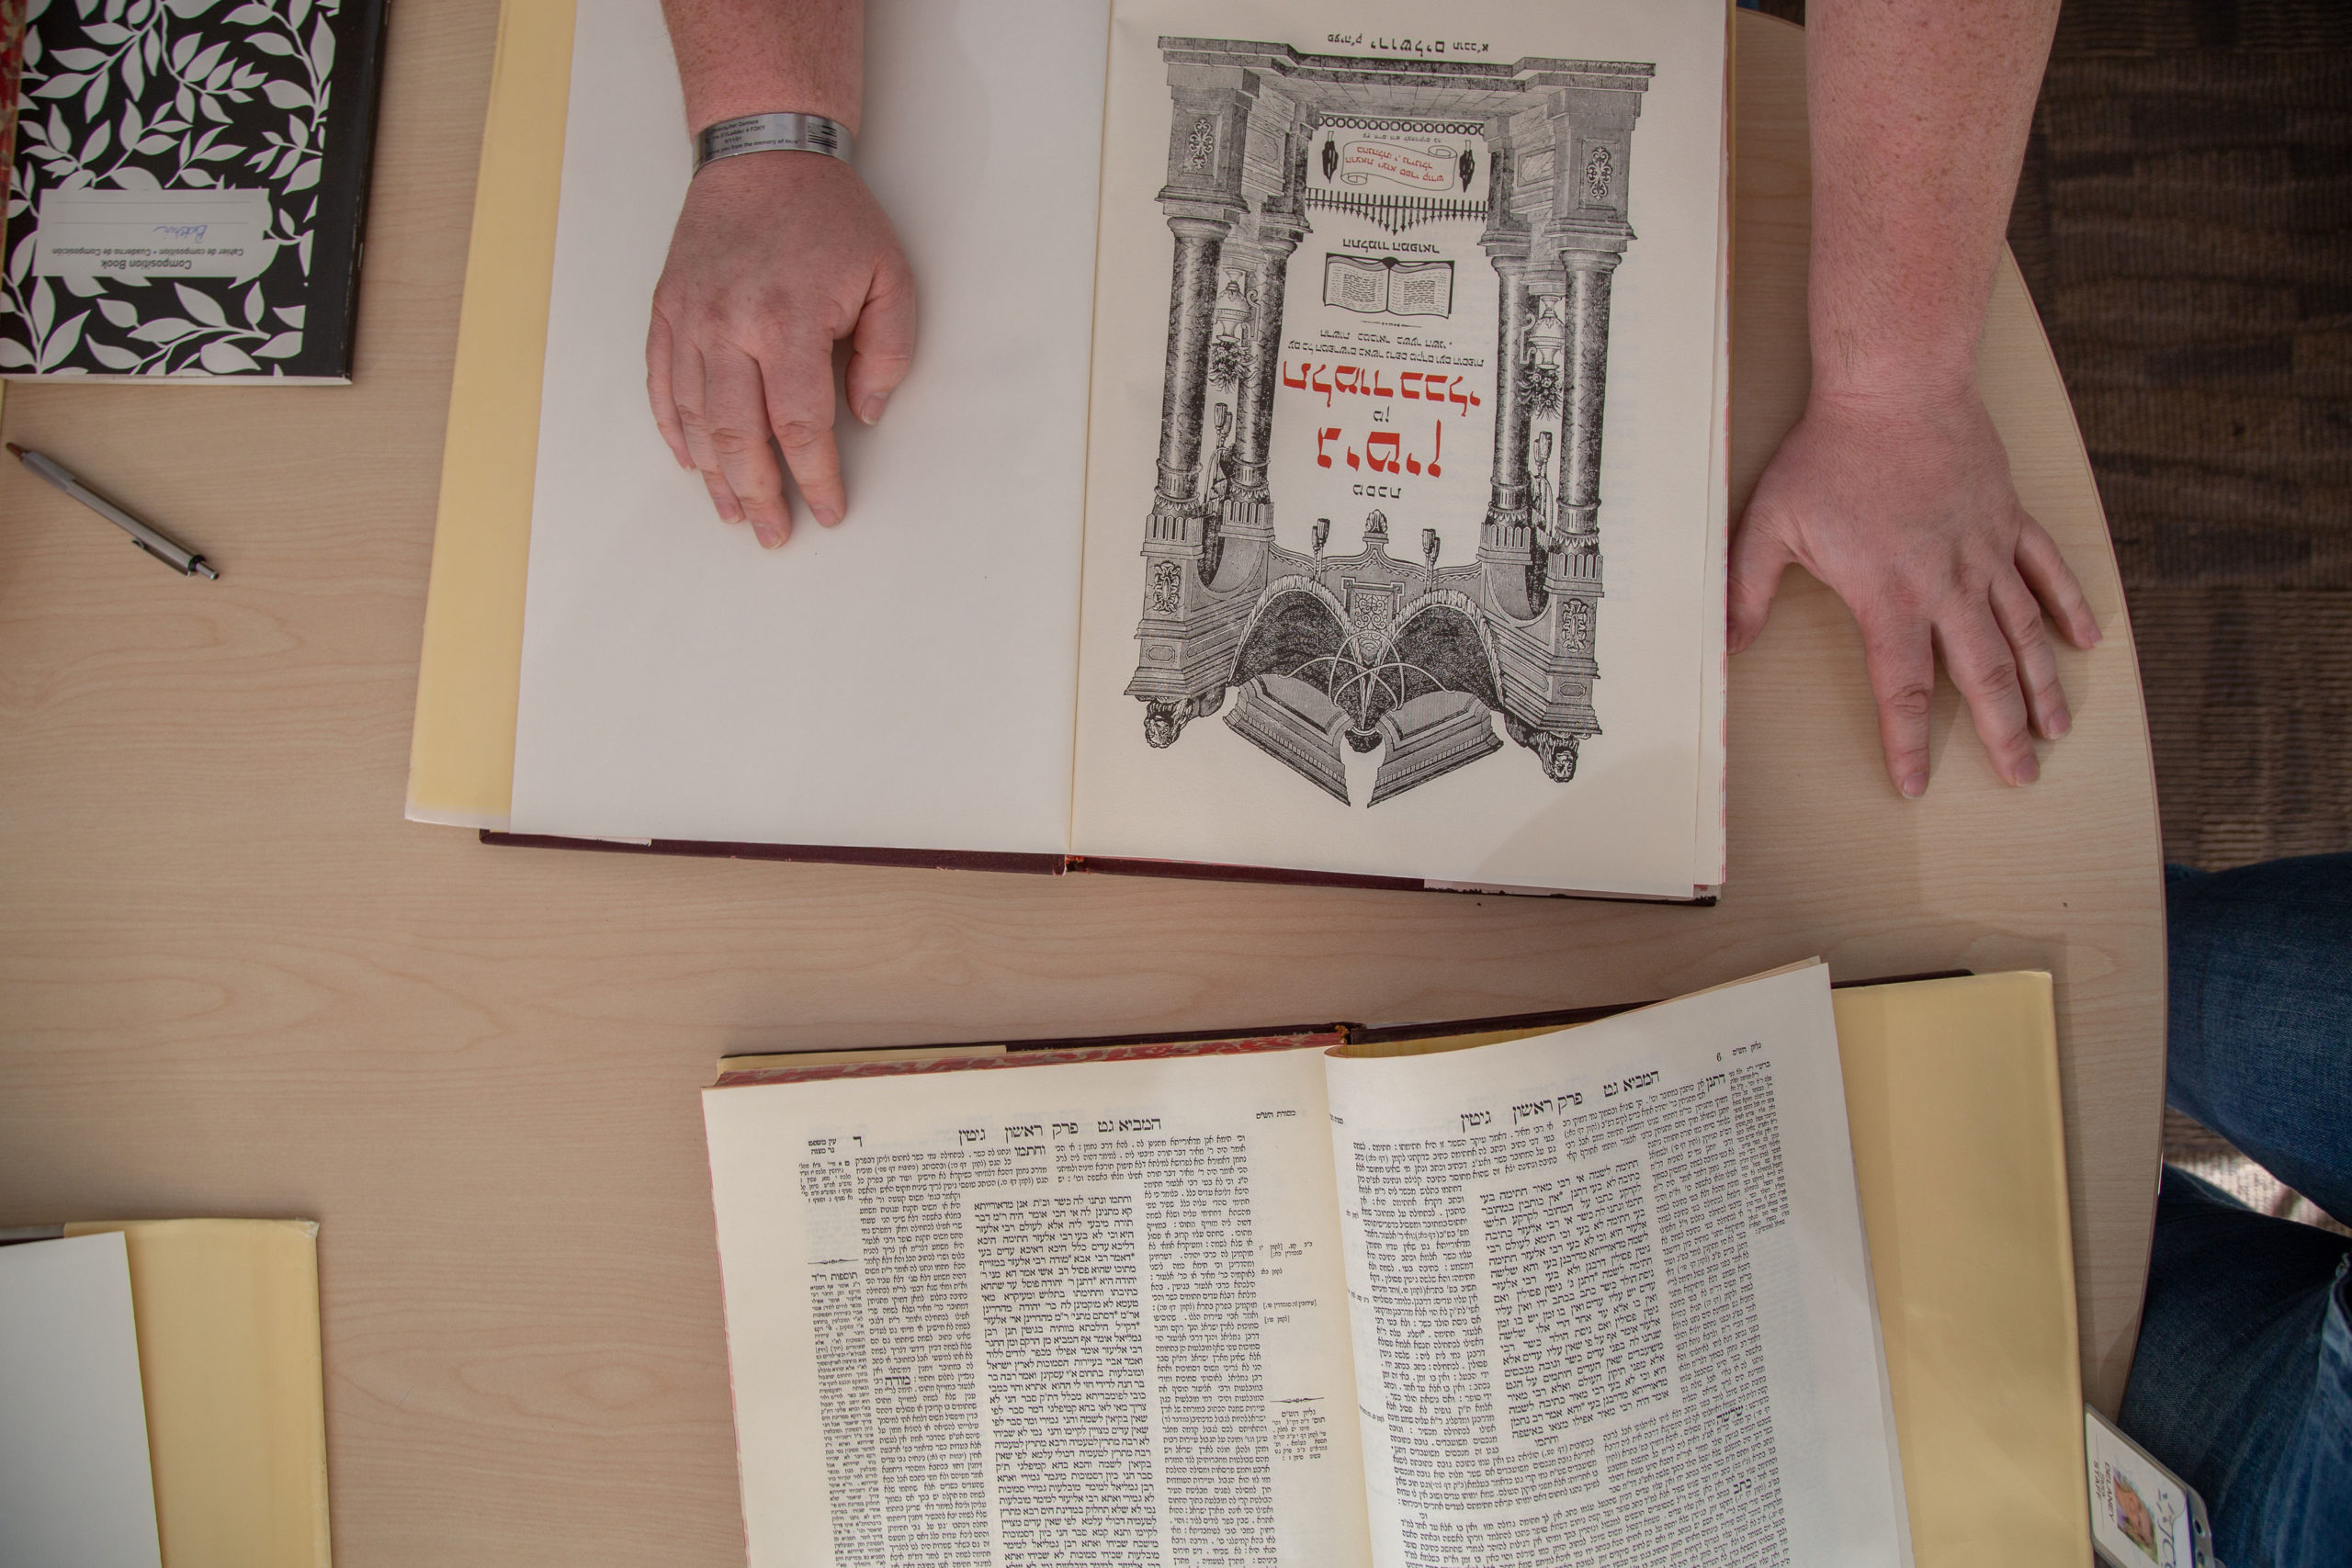 Photo of book with hands resting on it